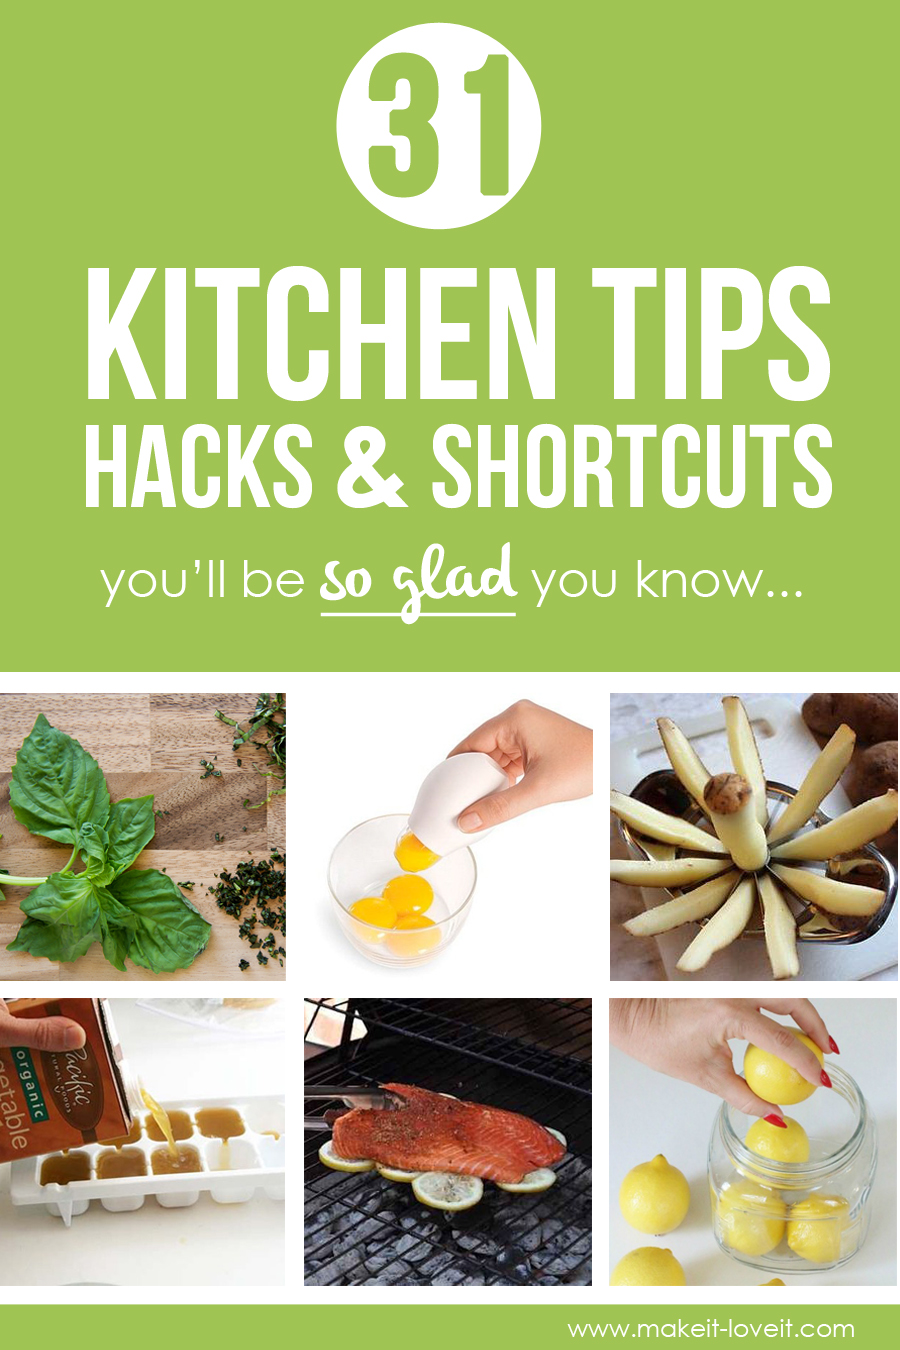 31 Kitchen Tips, Hacks, & Shortcuts you'll be SO GLAD you know! | via Make It and Love It